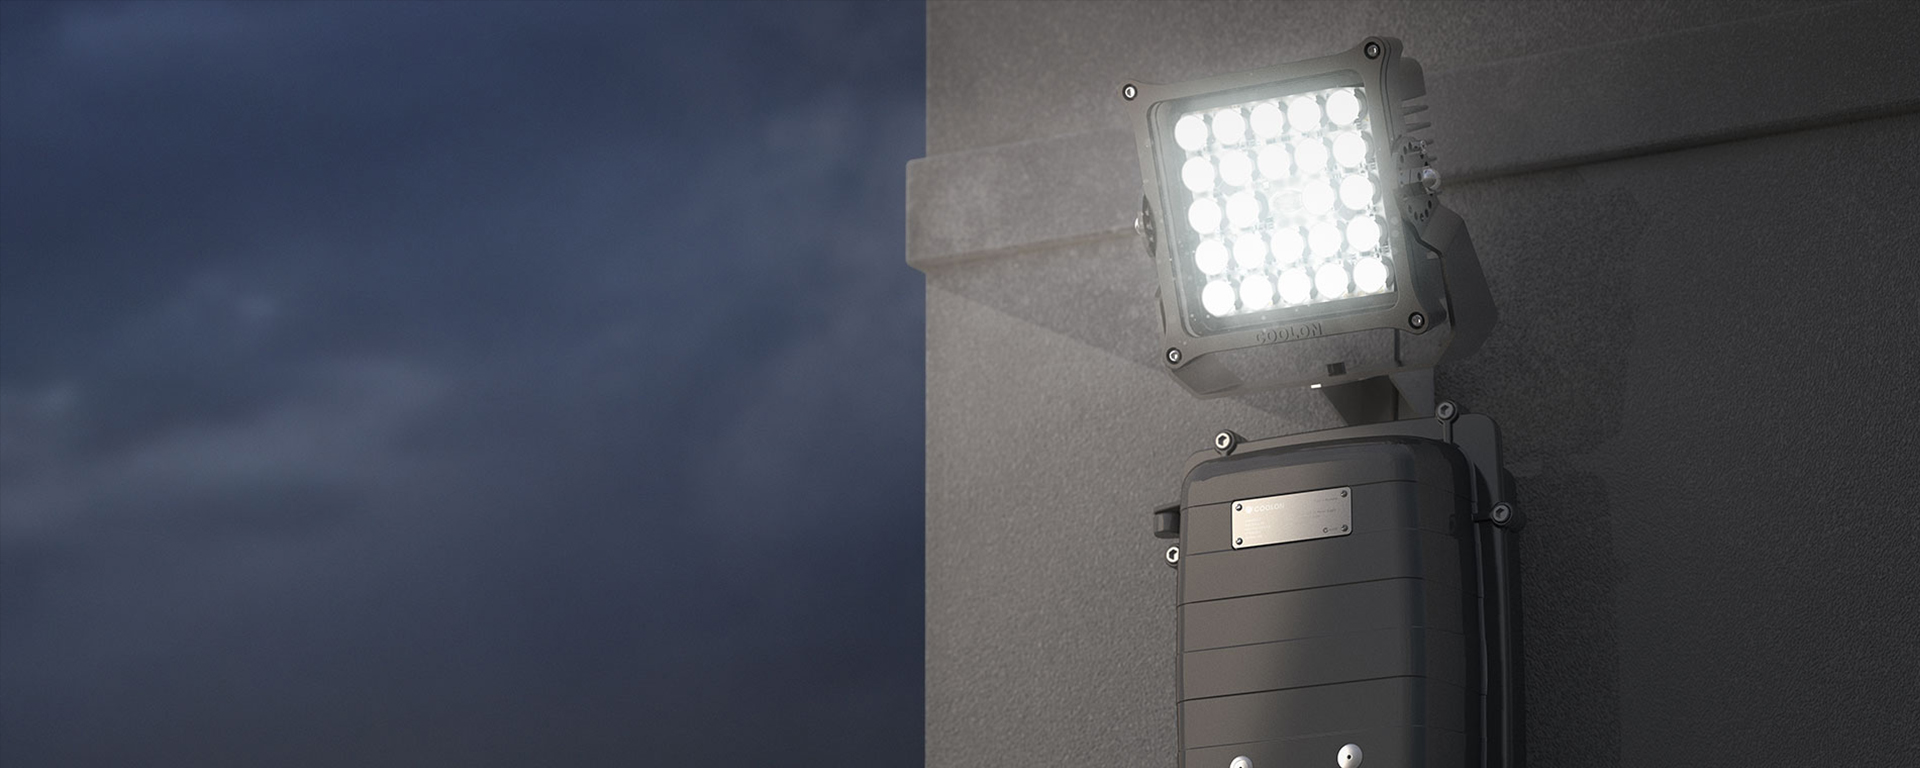 Unlike conventional LED floodlights, the Warden LED was designed to withstand constant abuse.  Resistant to Vibration Impact/Shock Proof Chemical Resistant High Pressure Washable Unaffected by Severe Temperature Variations